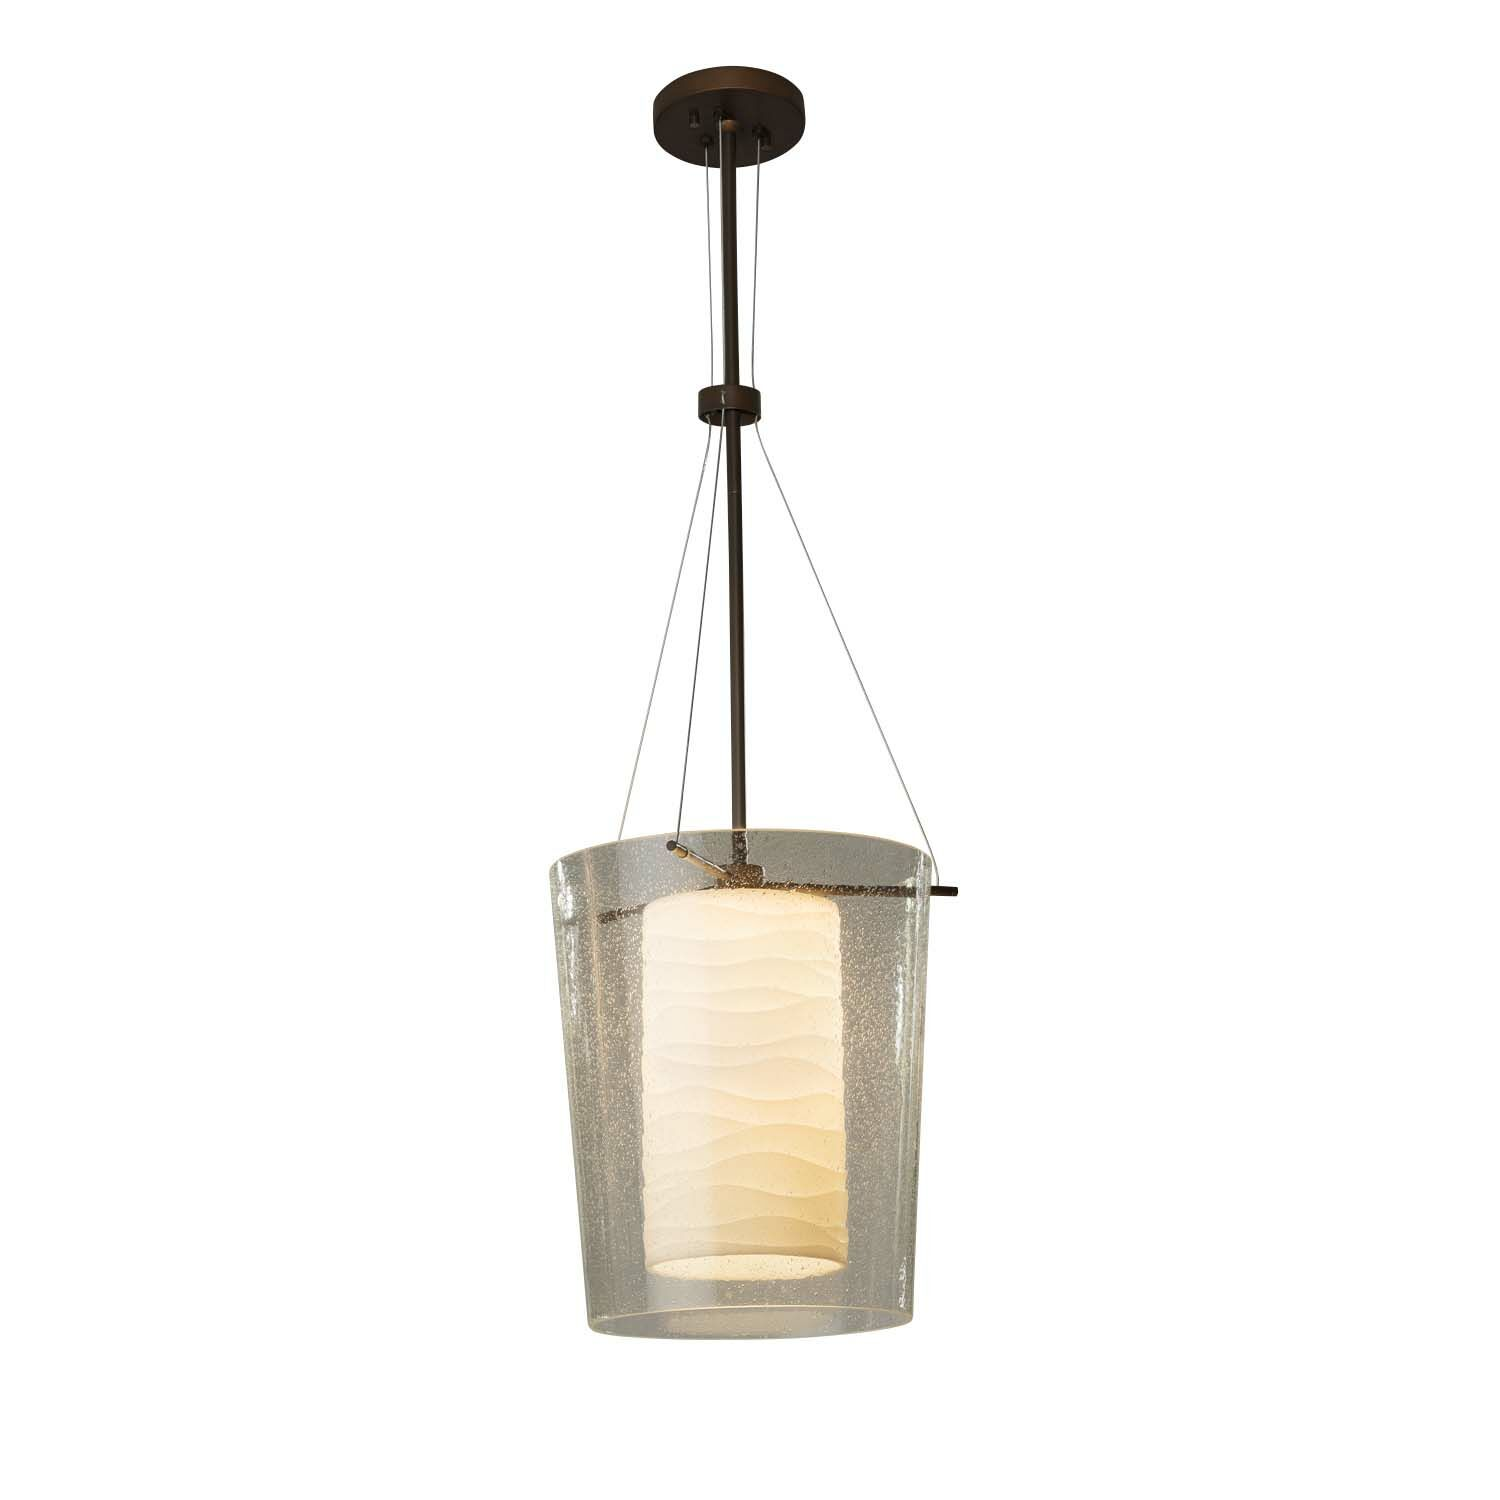 Conovan 1-Light Drum Pendant Finish: Brushed Nickel, Bulb Type: Dedicated LED